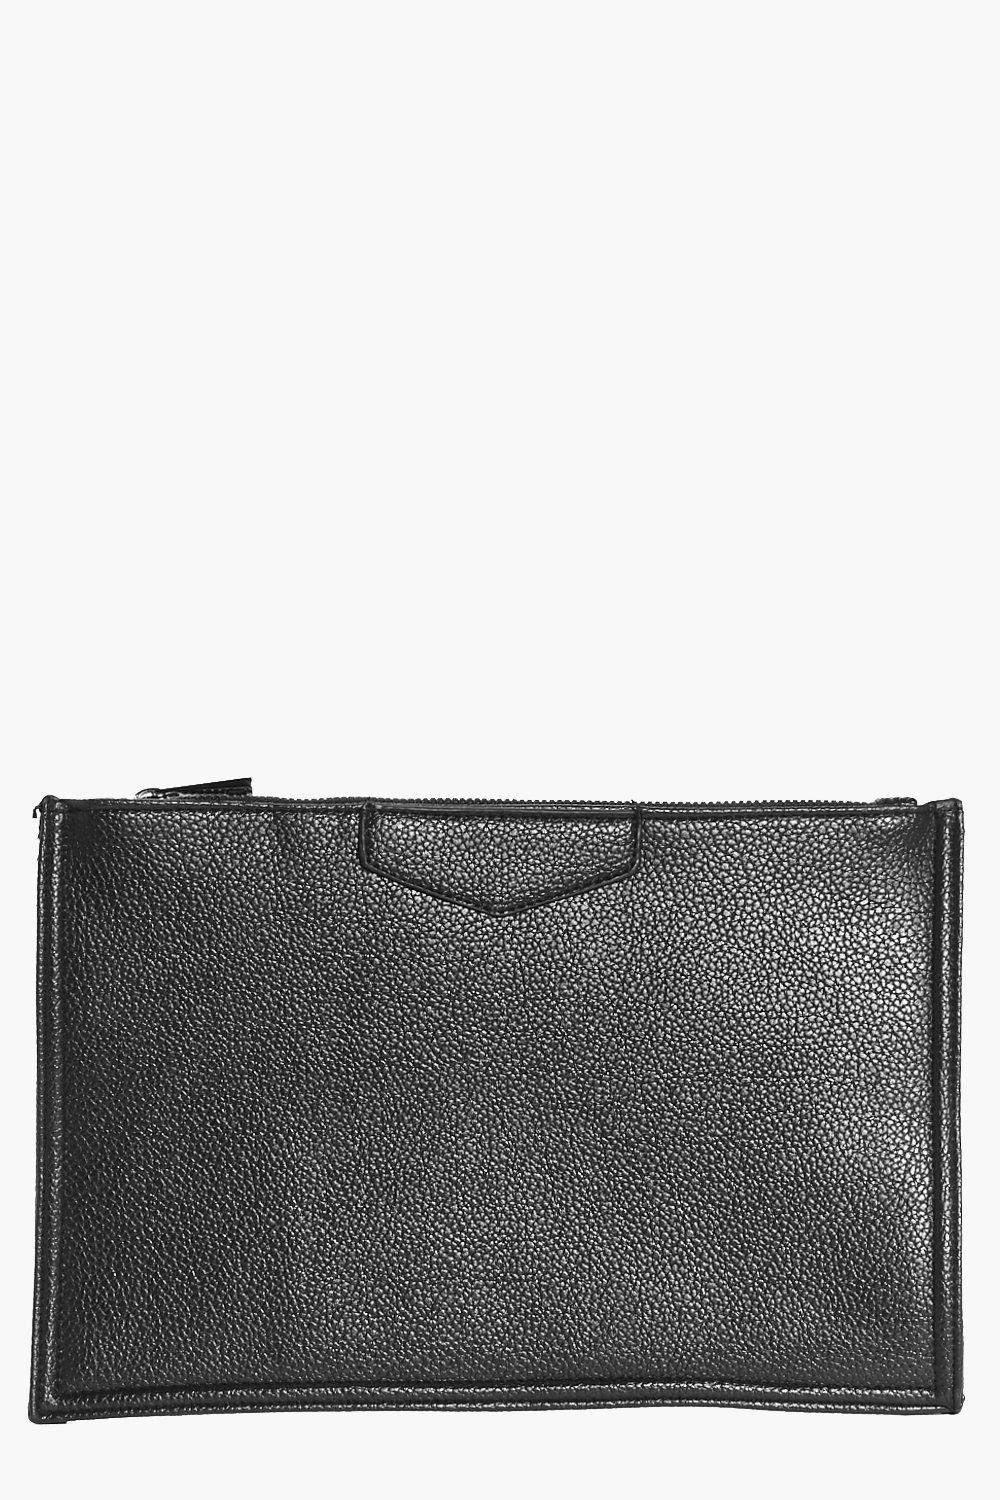 Evie Tab Detail Clutch Bag